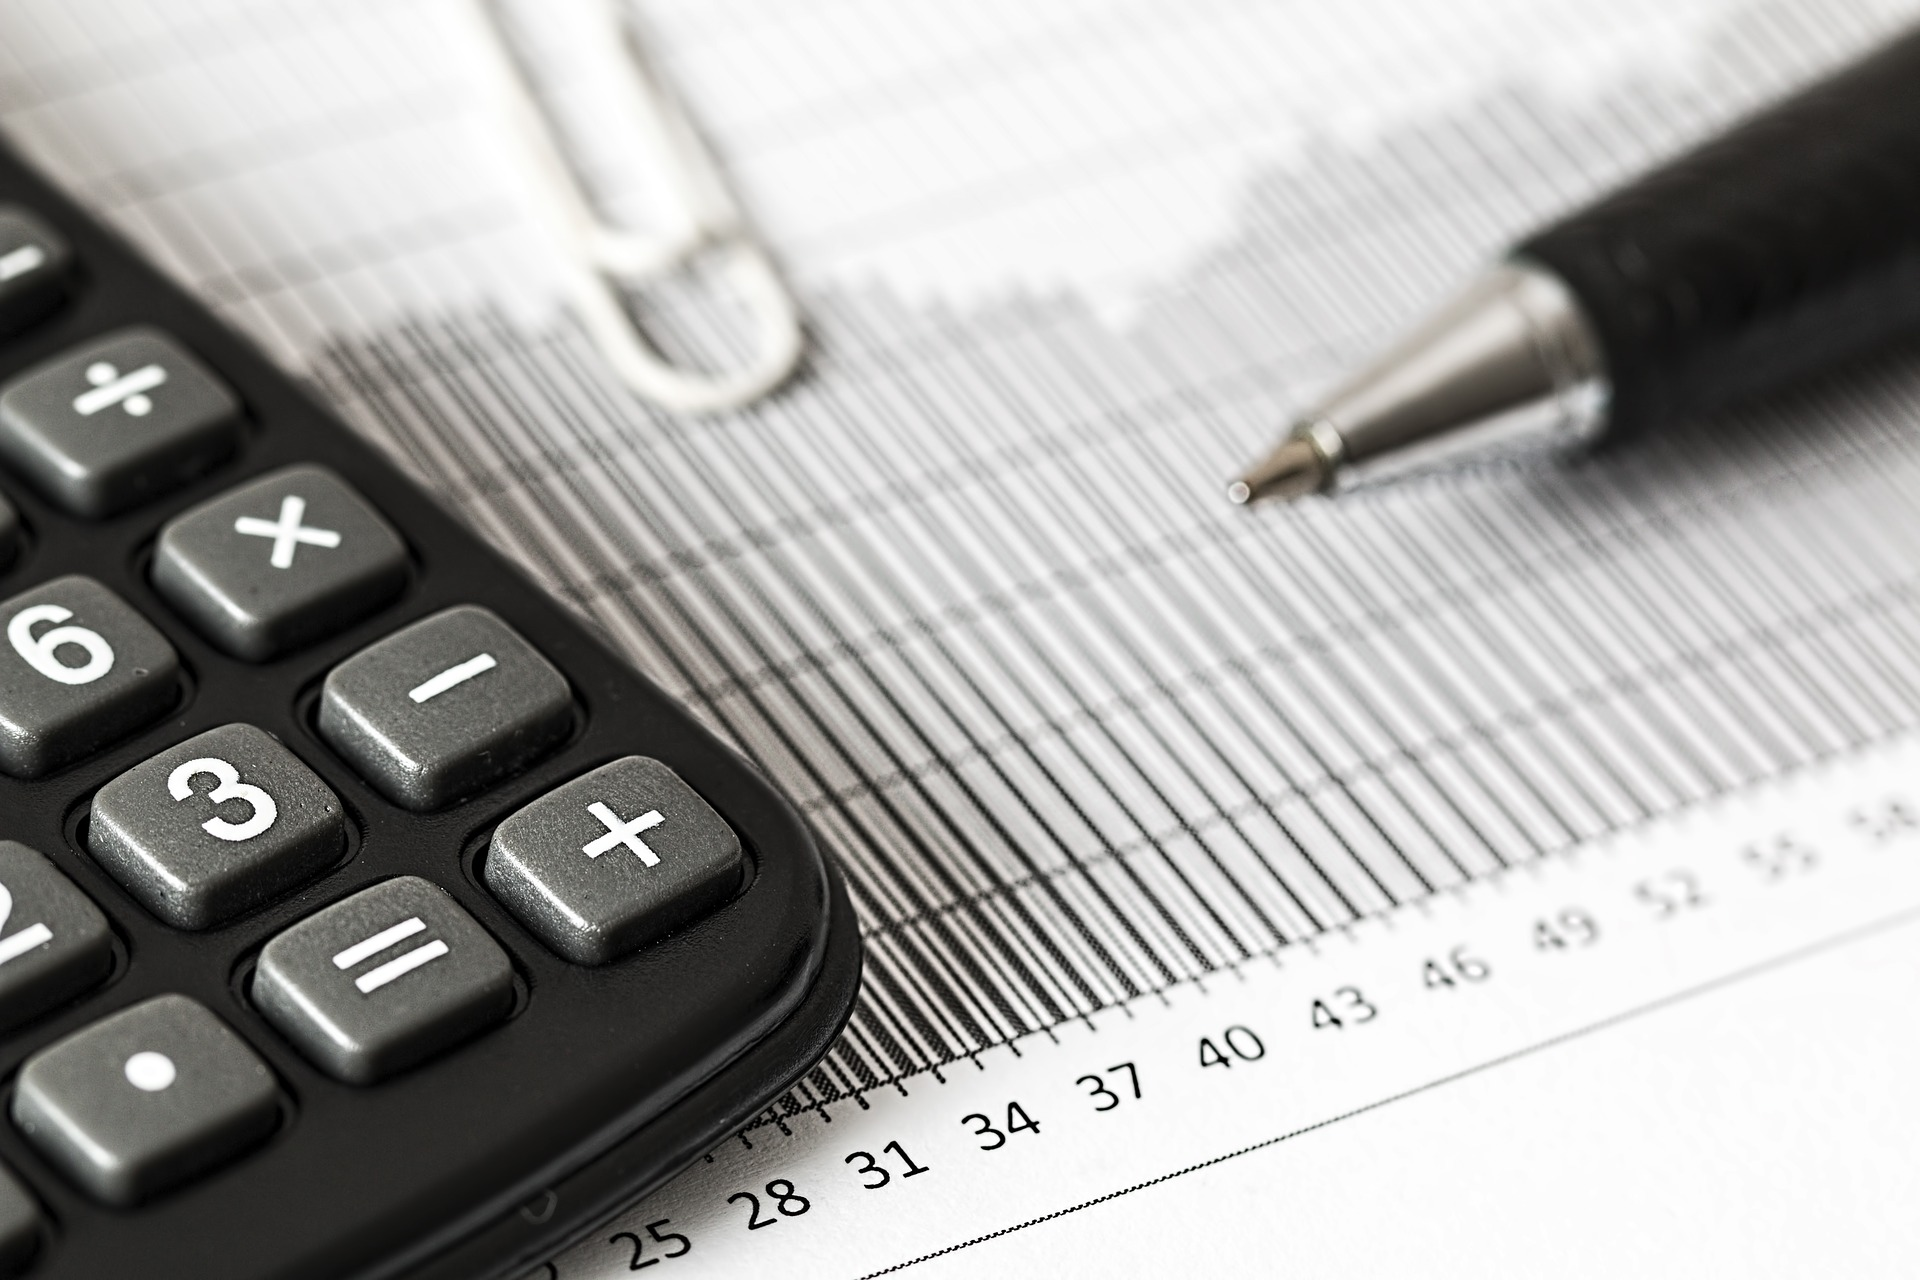 calculator-1680905_1920As an SME, Will You Get More or Less From a Local Accounting Agency